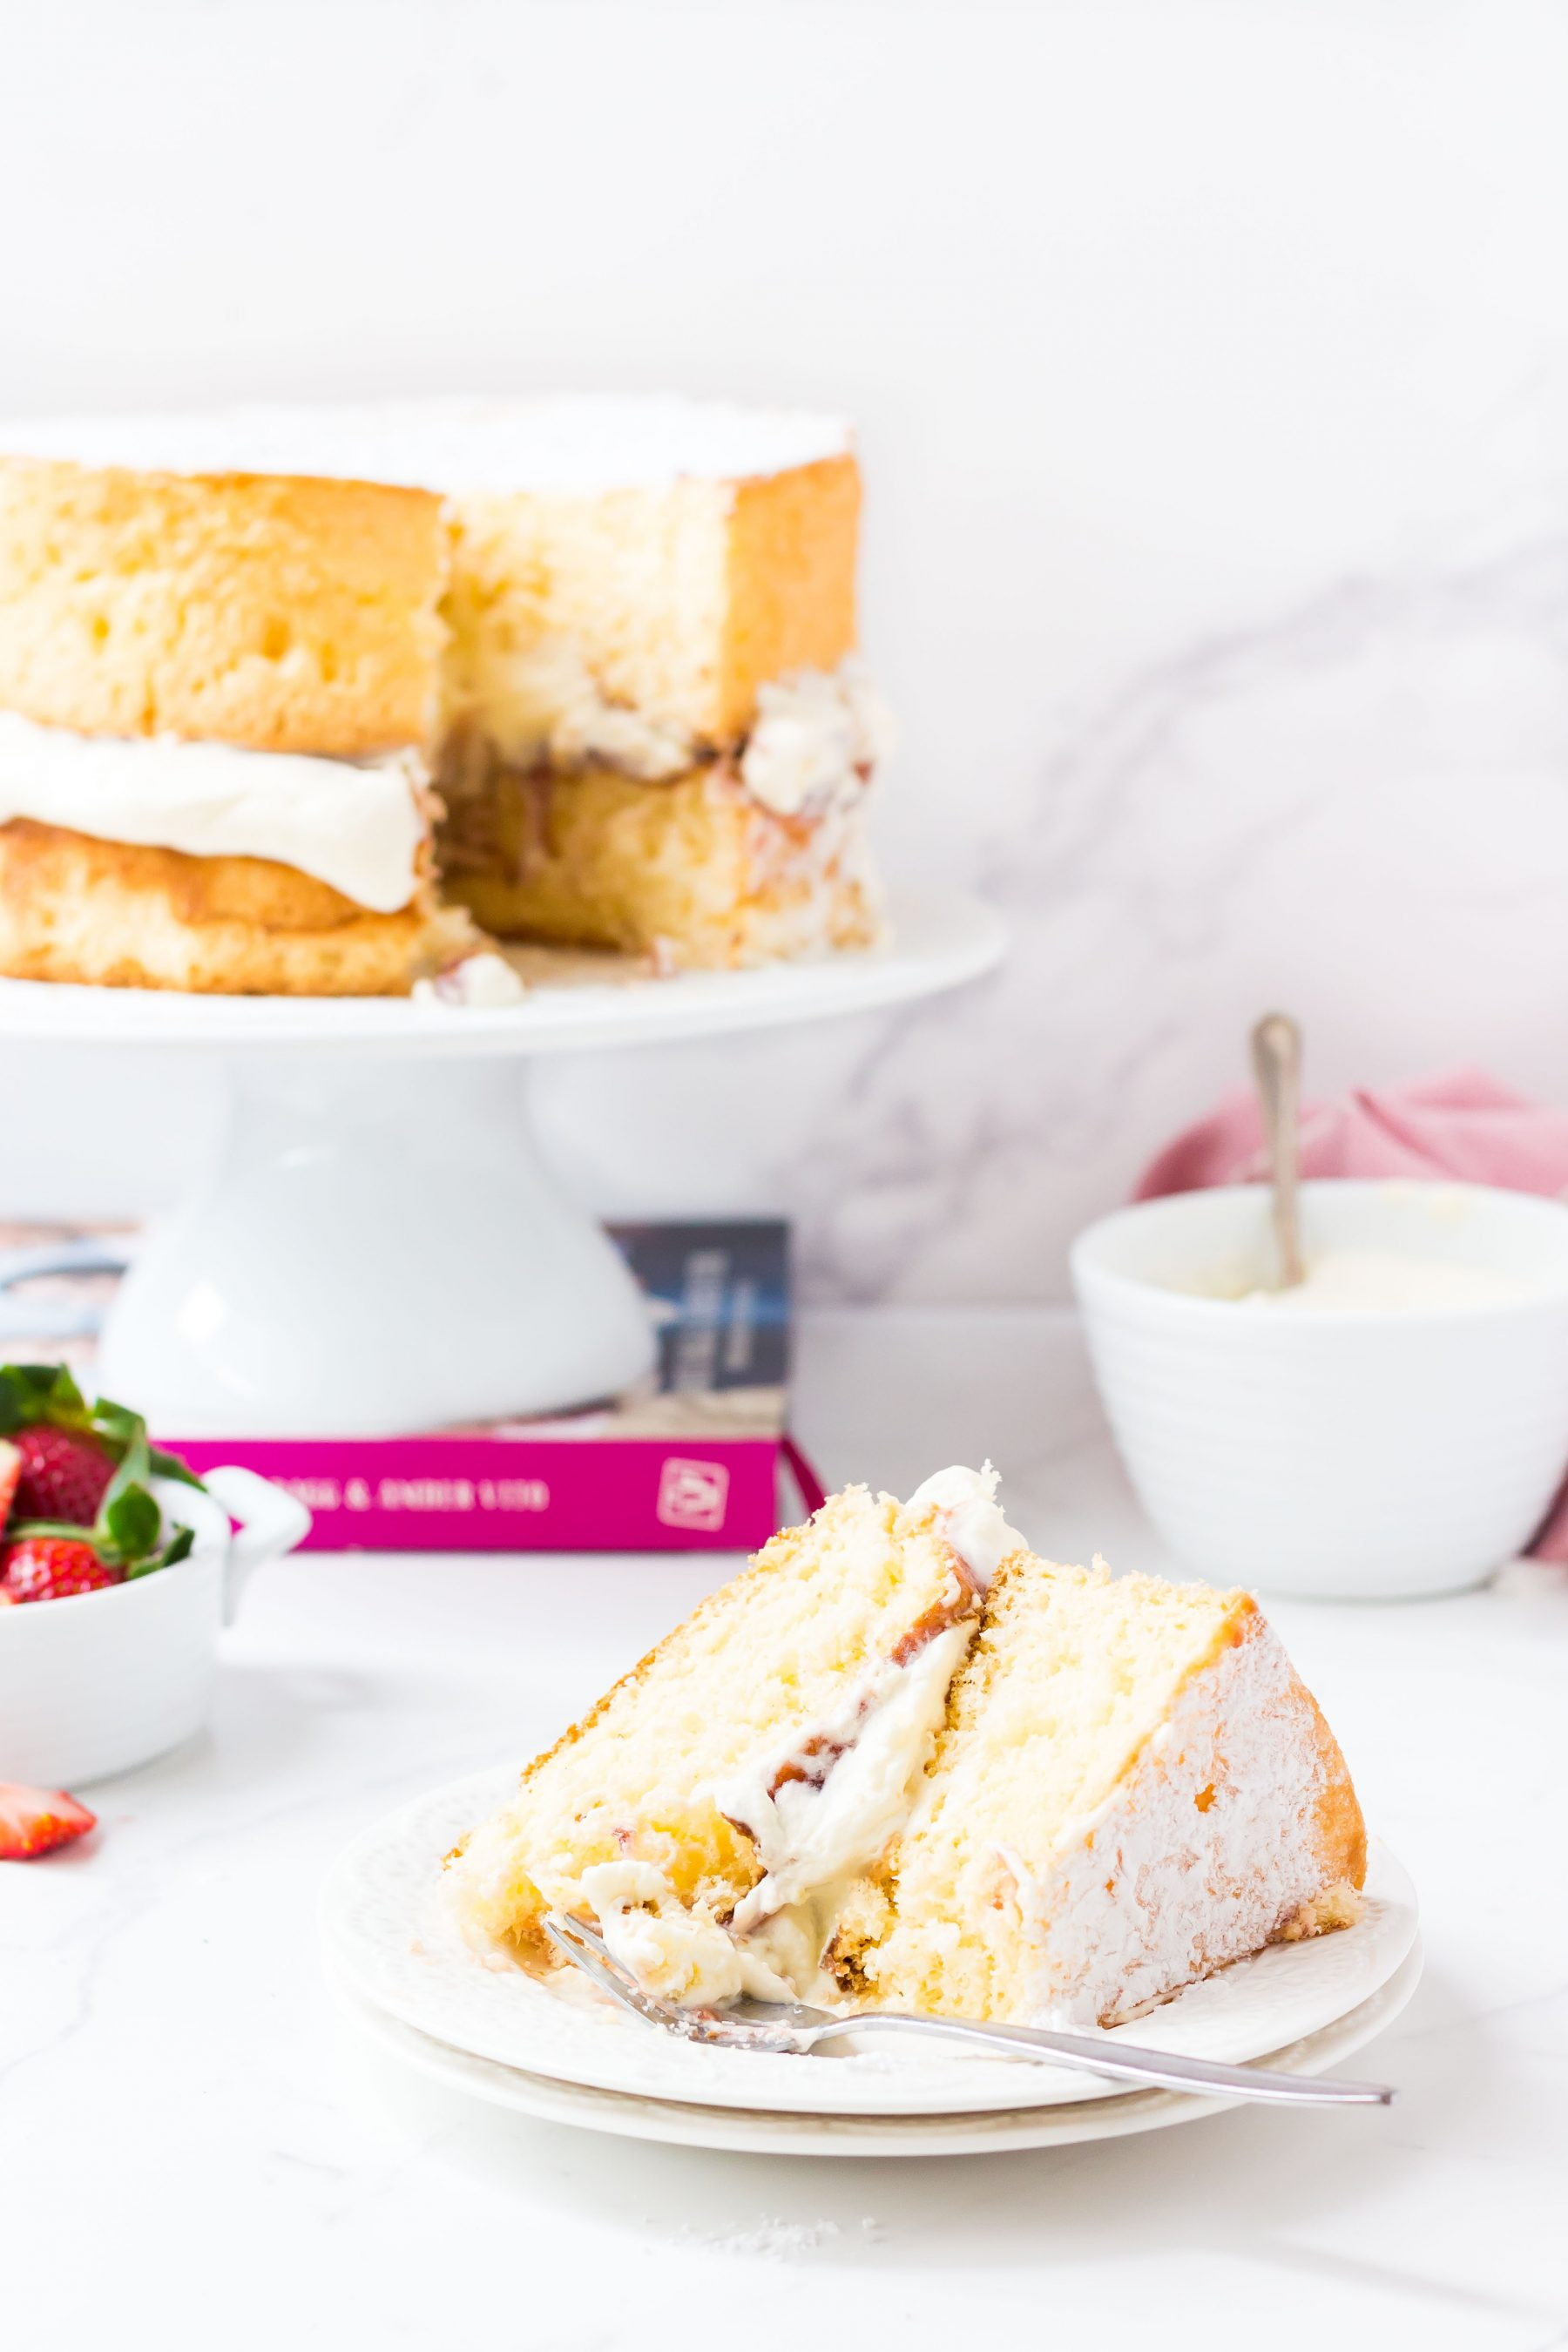 Low FODMAP Sponge Cake